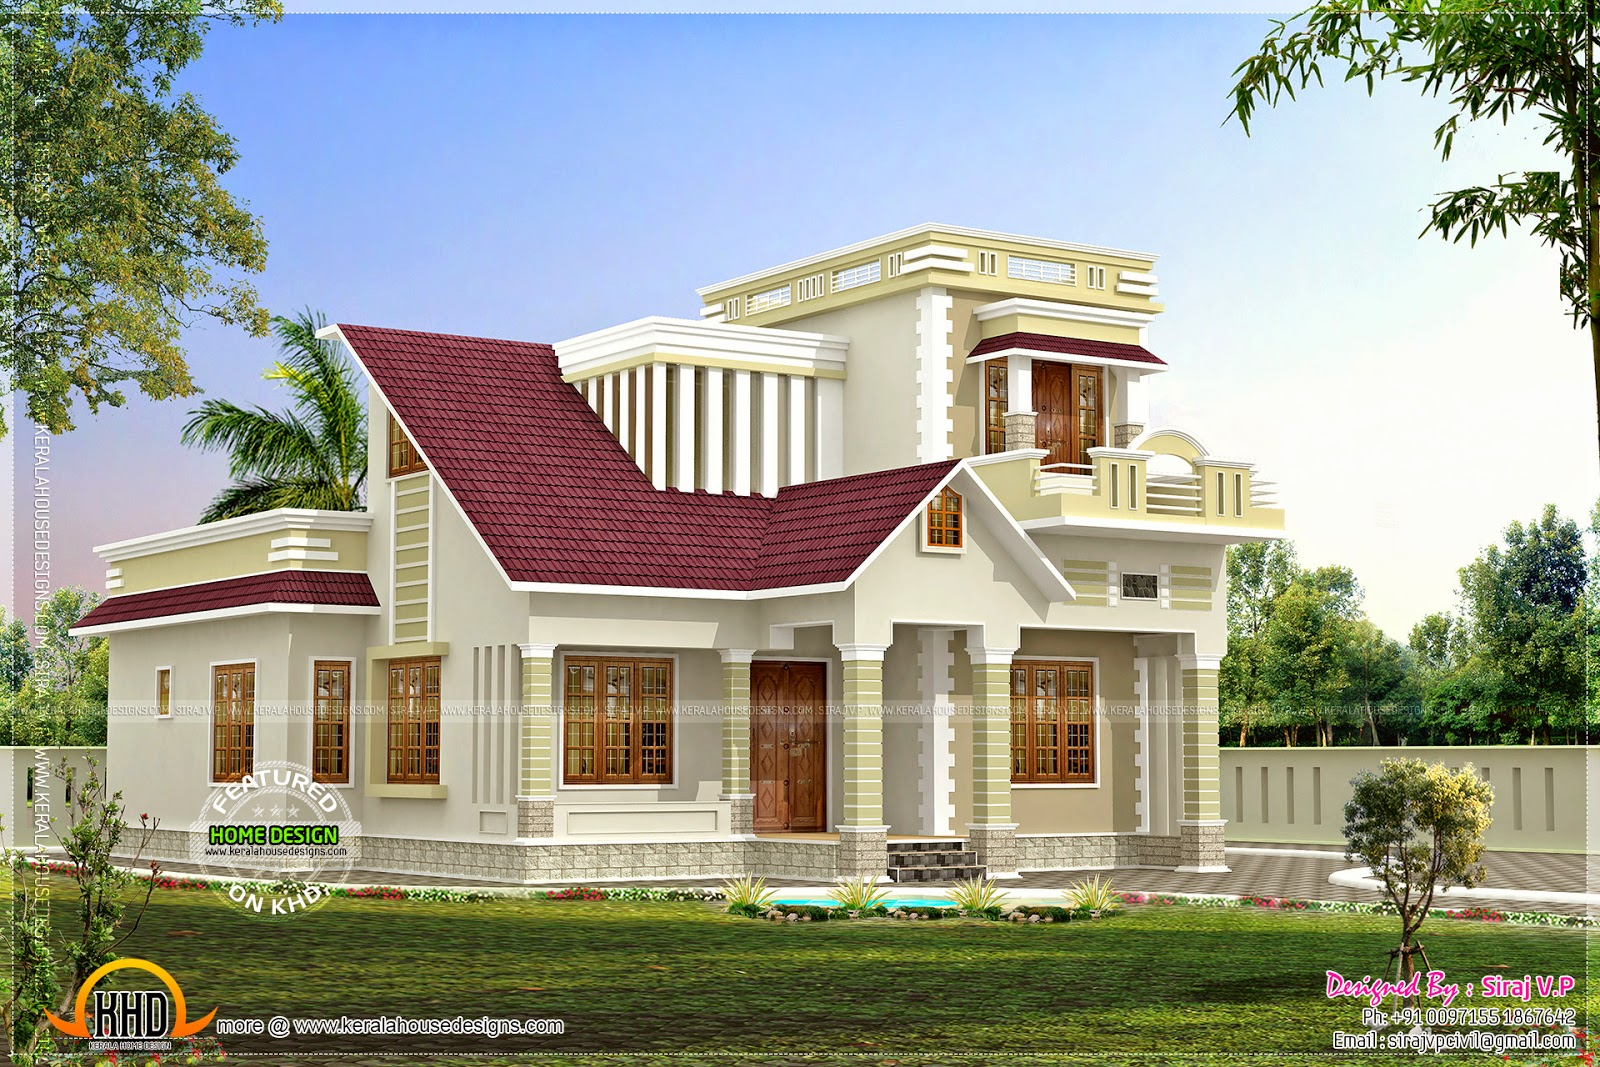 House plans and design modern house plans low budget for Low budget home plans